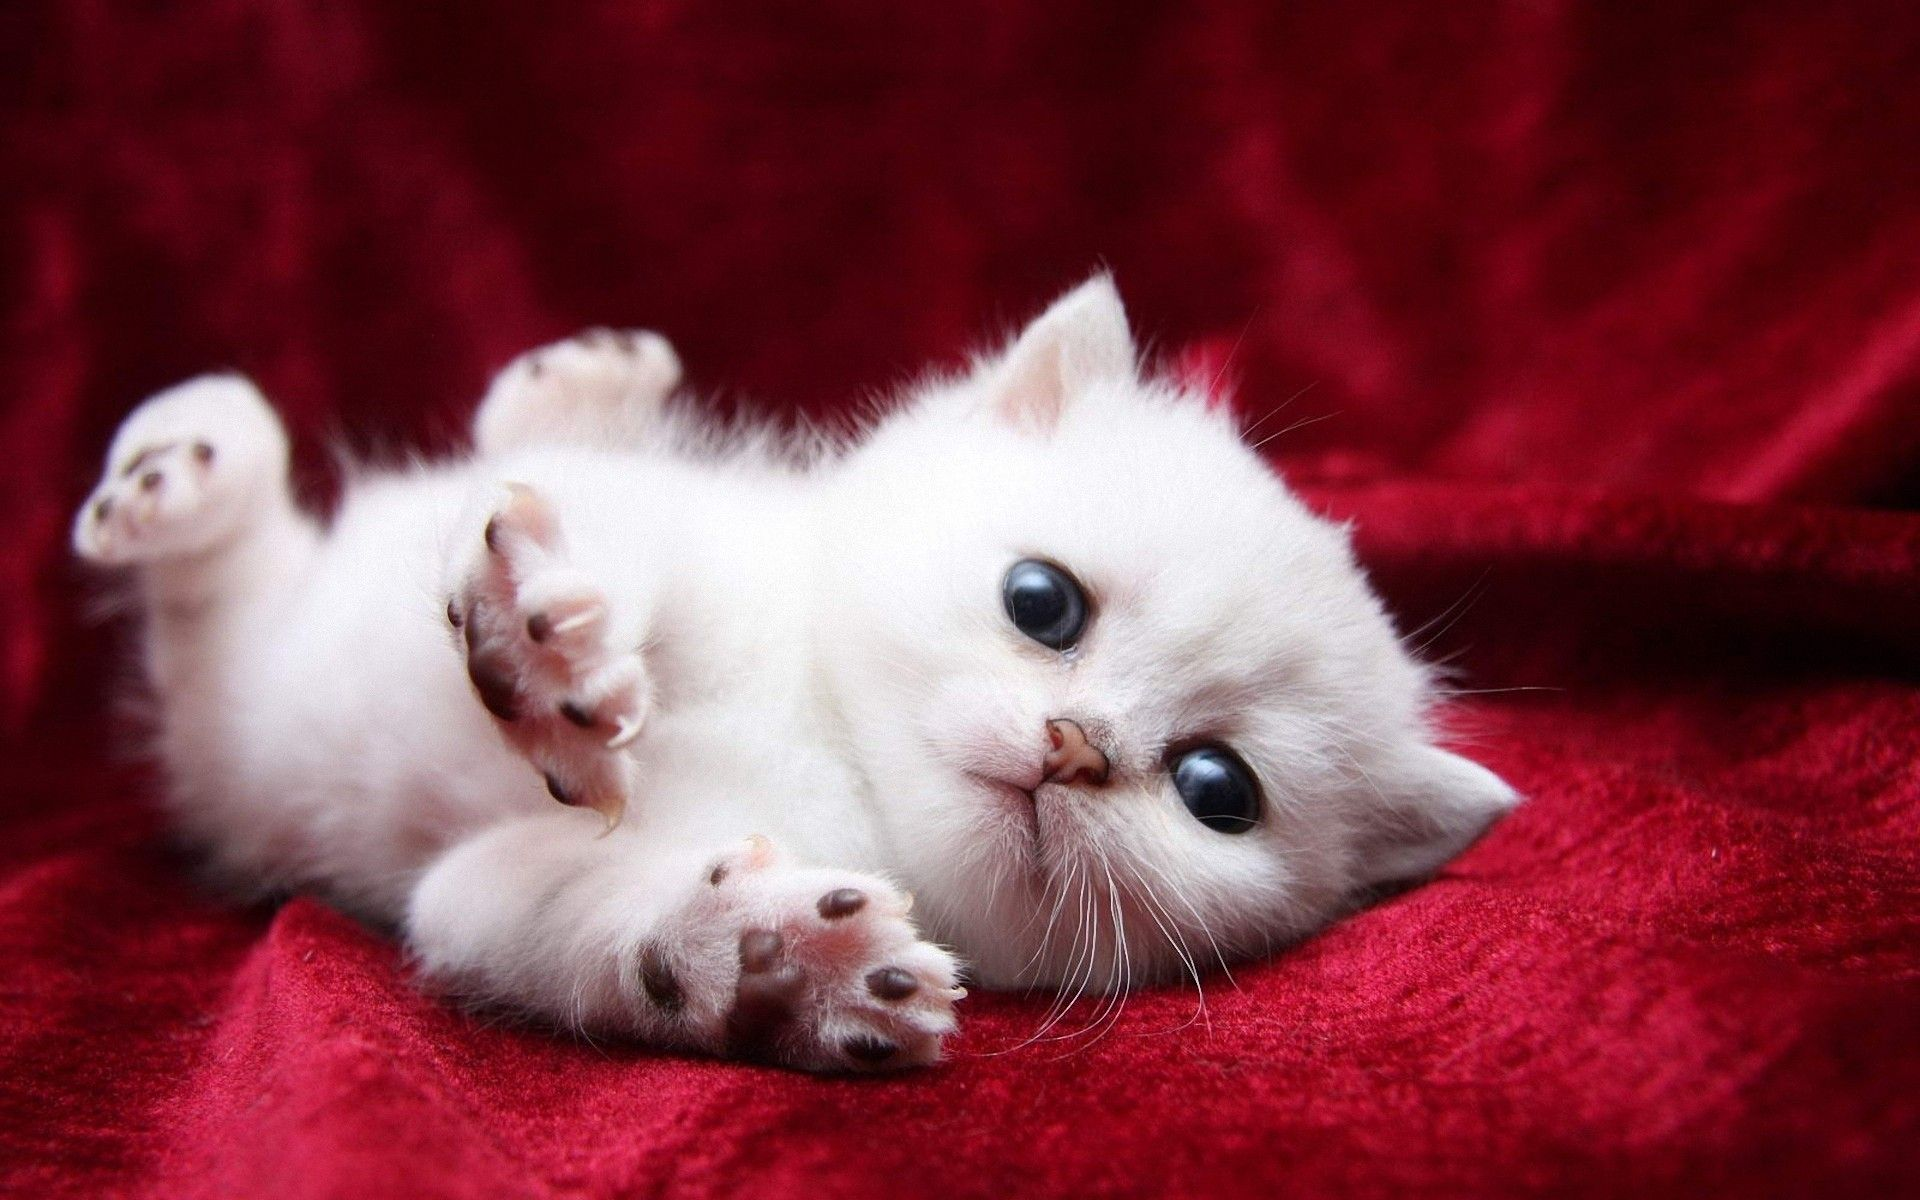 Cute Kittens Wallpapers Kittens Cutest Cute Baby Cats Baby Cats